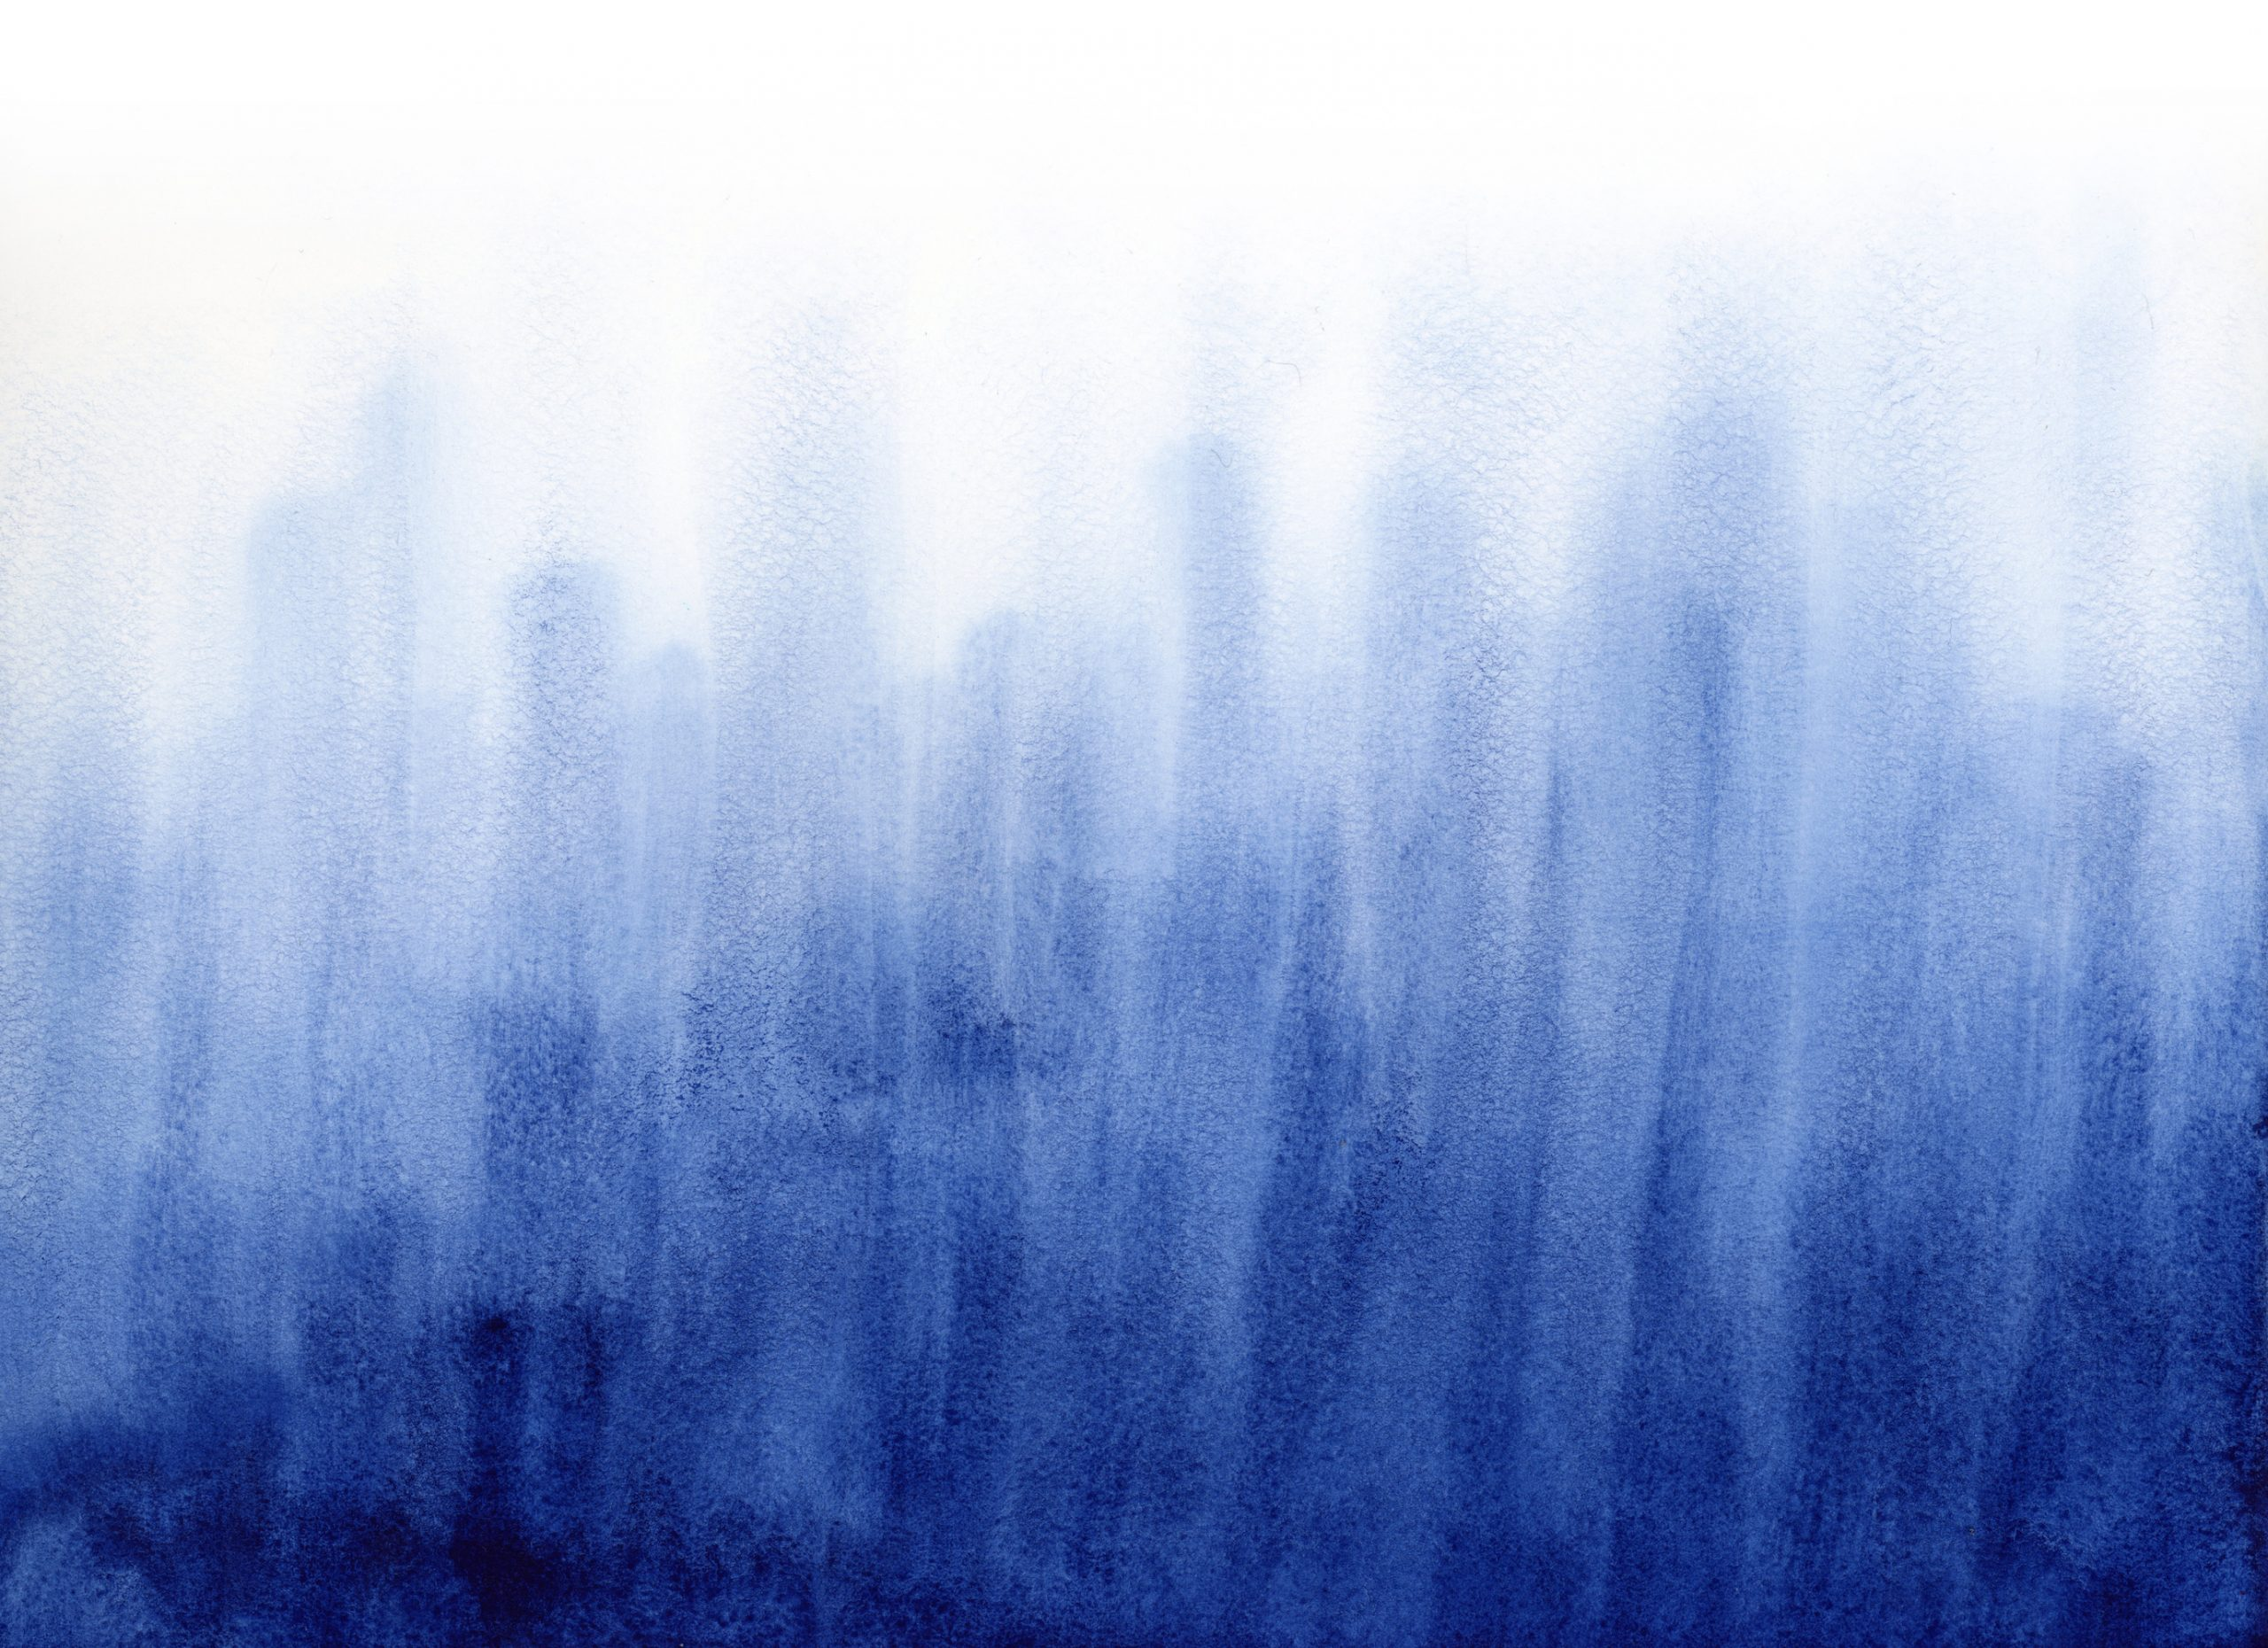 Deep blue abstract watercolor painting